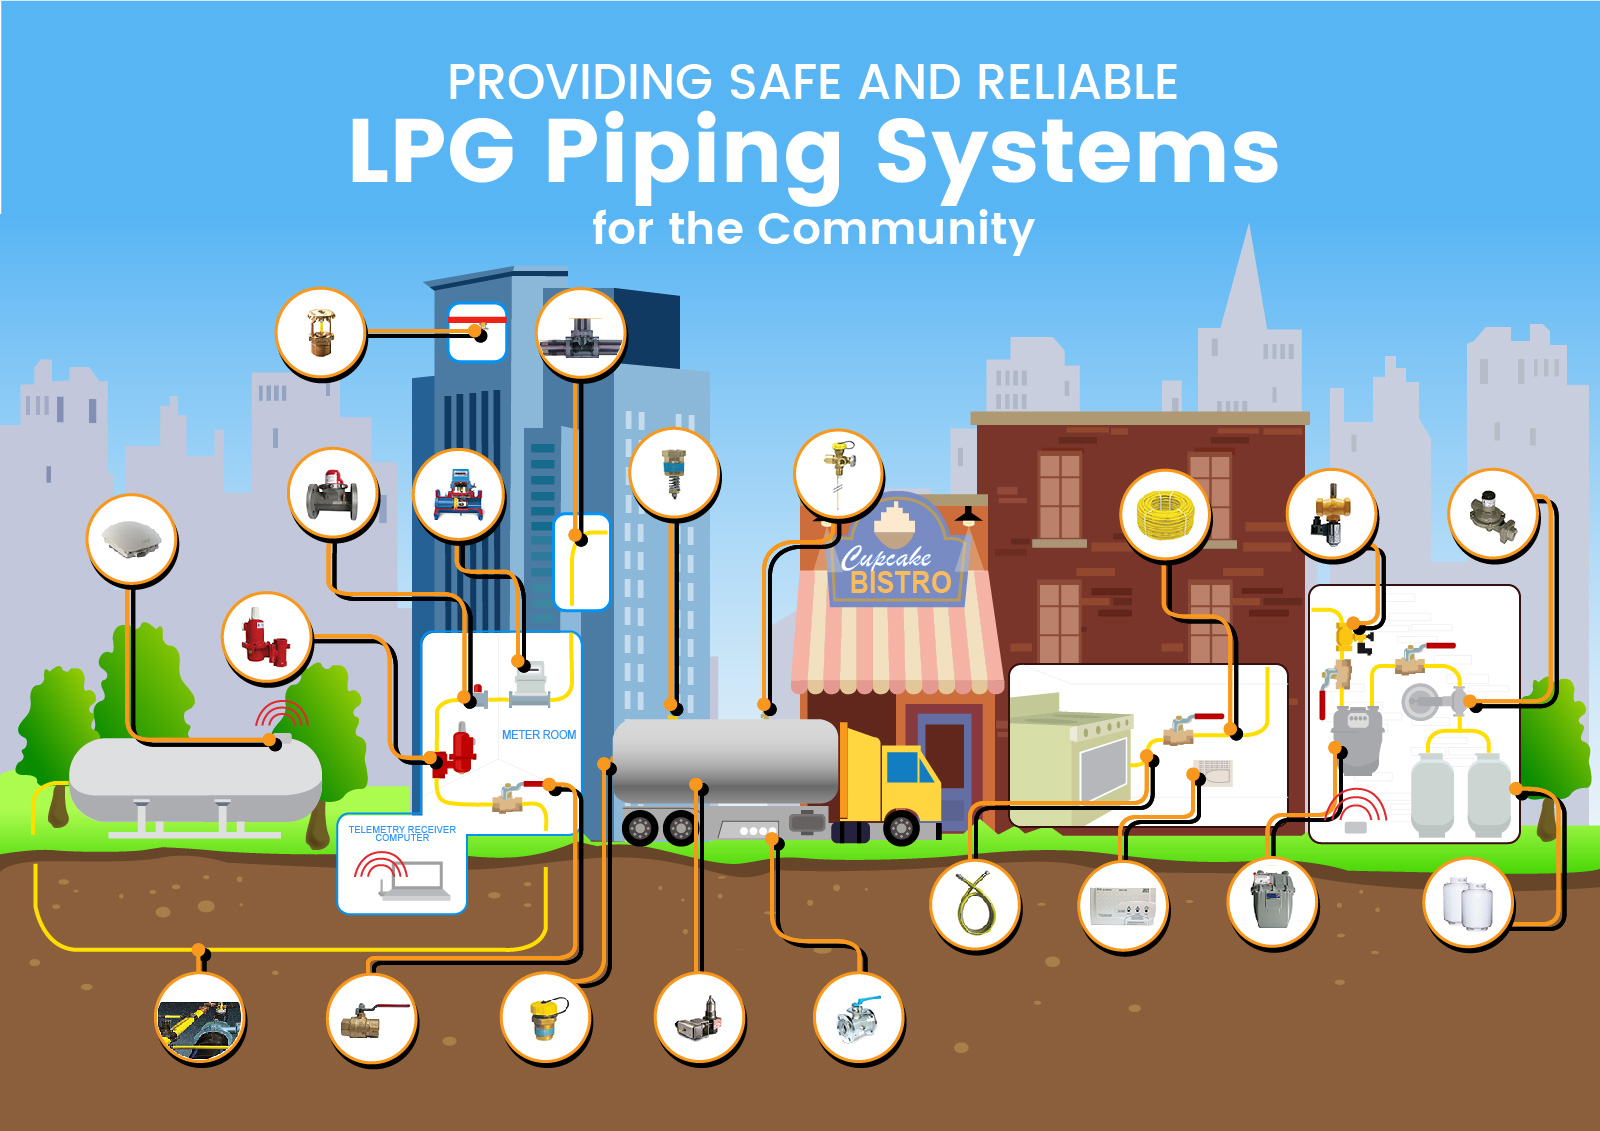 SEGroup LPG Piping Systems